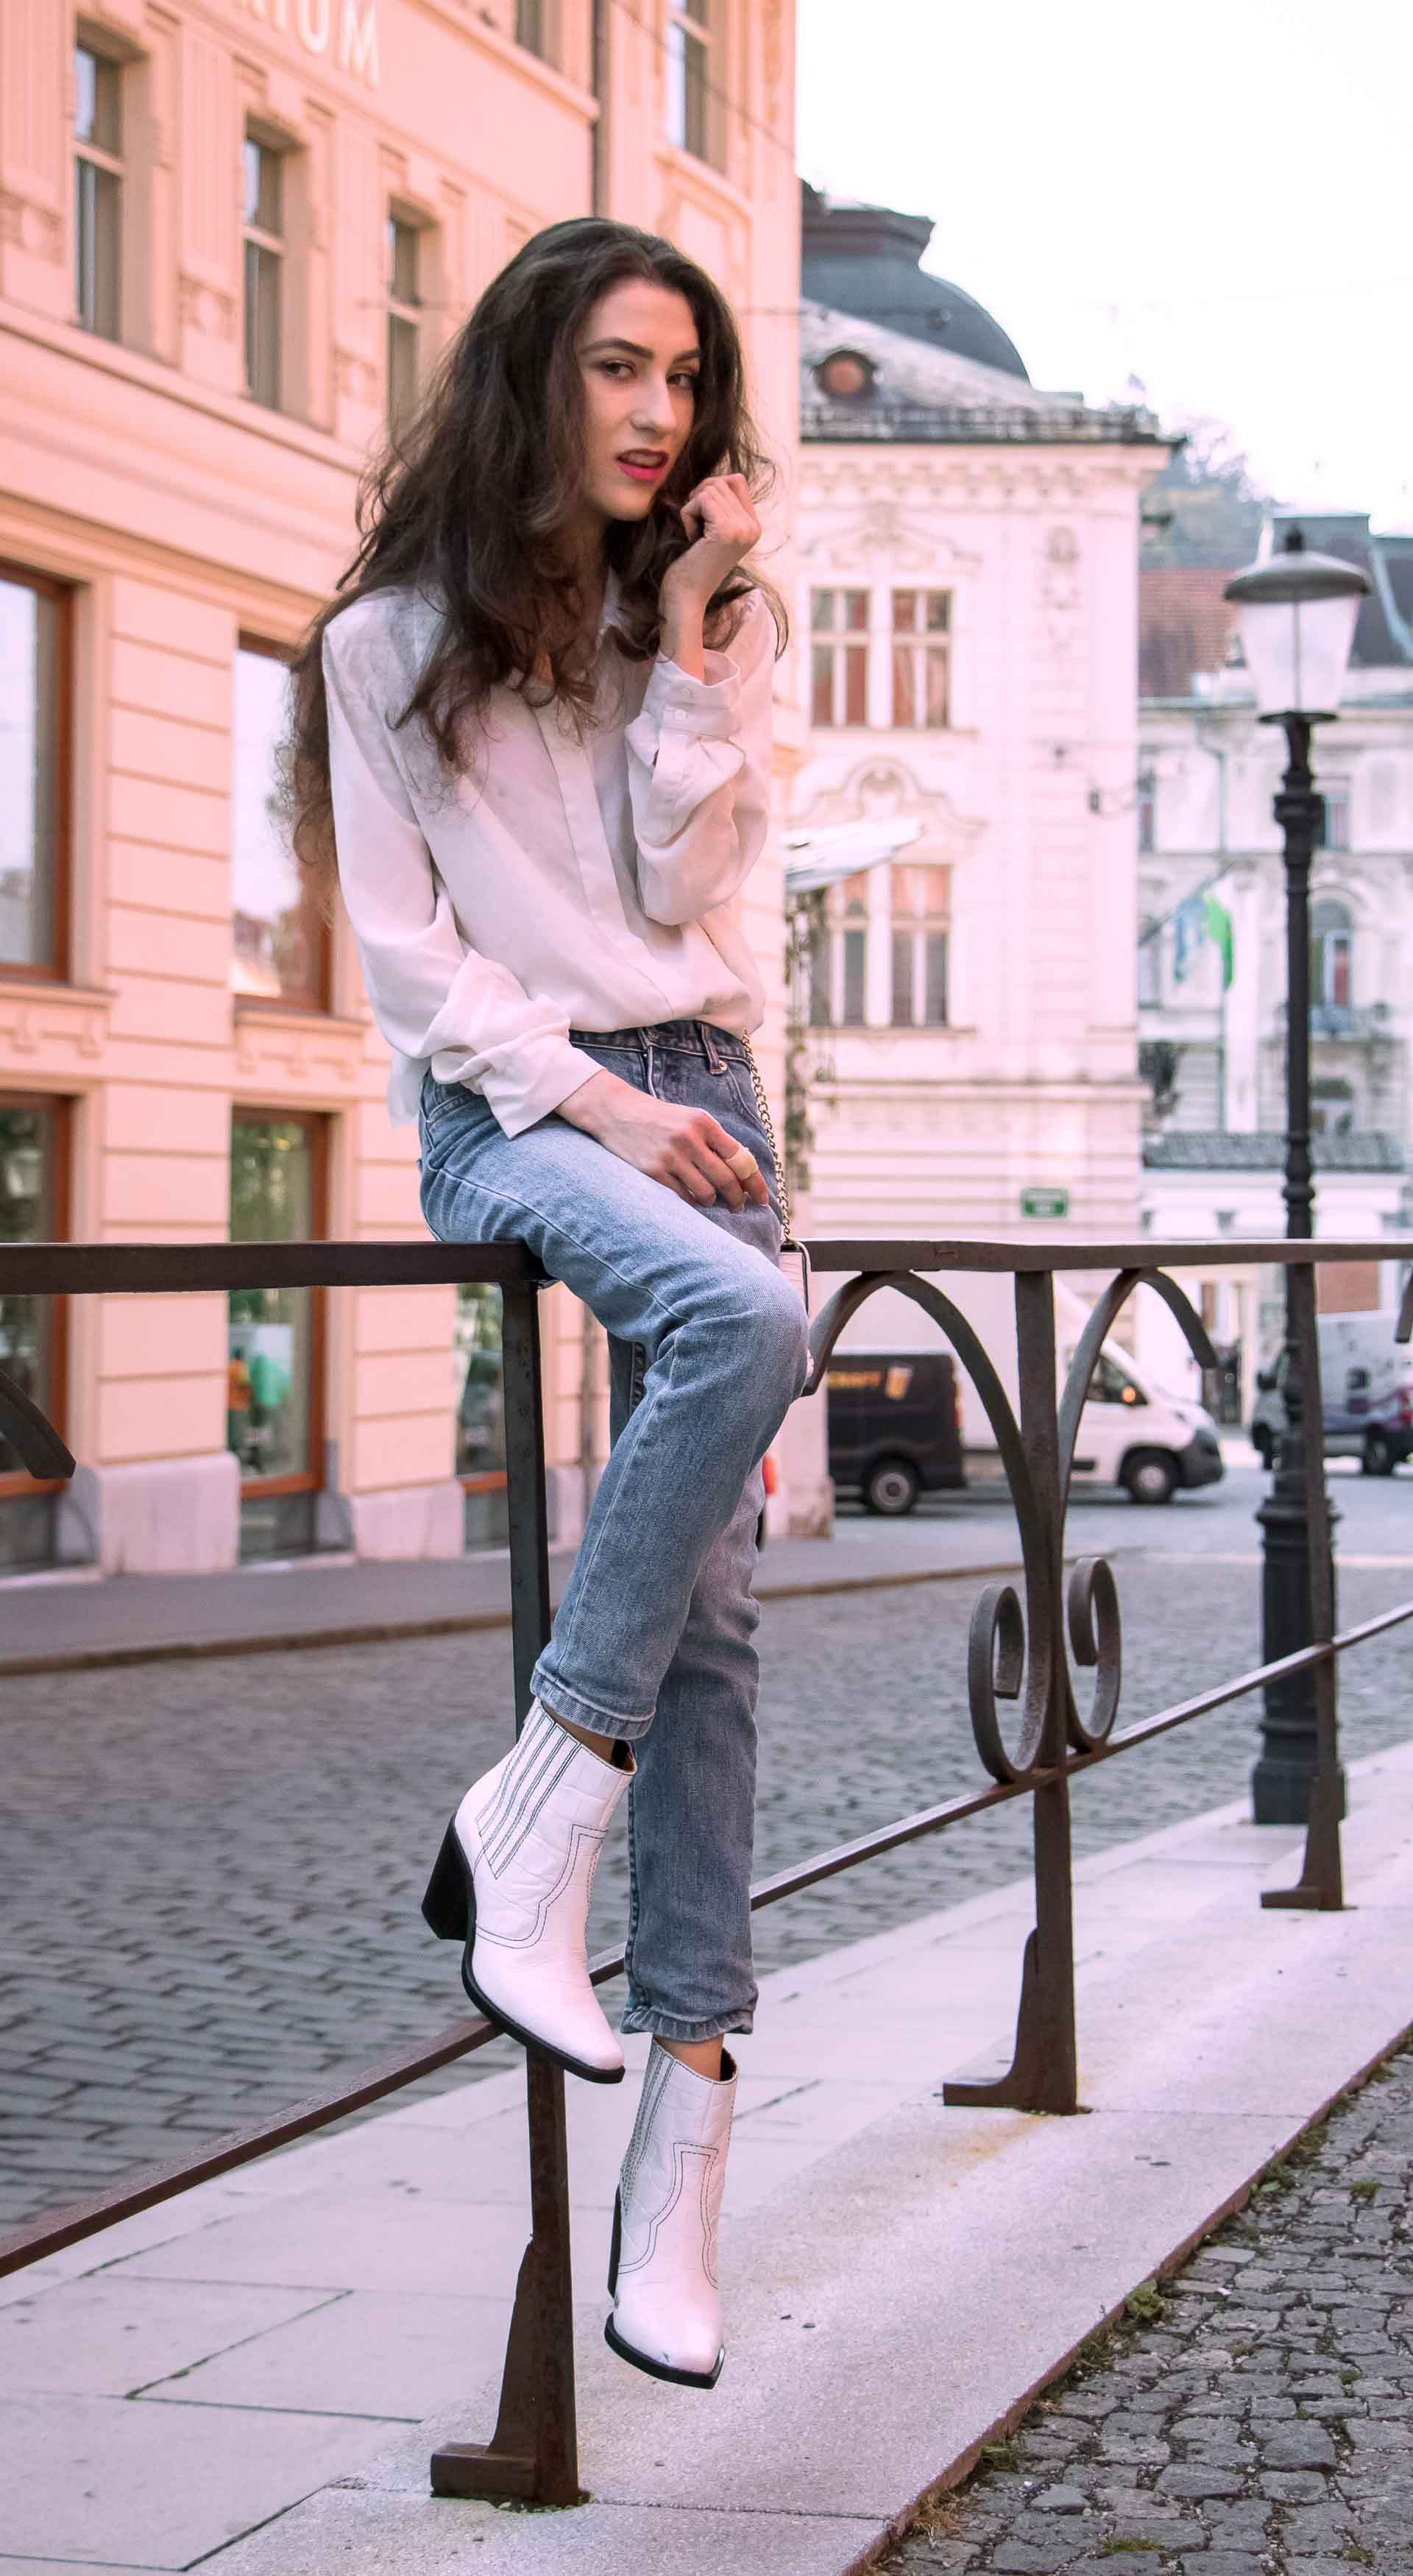 Beautiful Slovenian Fashion Blogger Veronika Lipar of Brunette from Wall wearing chic everyday outfit white silk shirt from Sandro Paris, white and black polka dot cami slip top, A.P.C. light blue jeans, white Ganni Western boots, chain strap shoulder bag sitting on the fence in Ljubljana